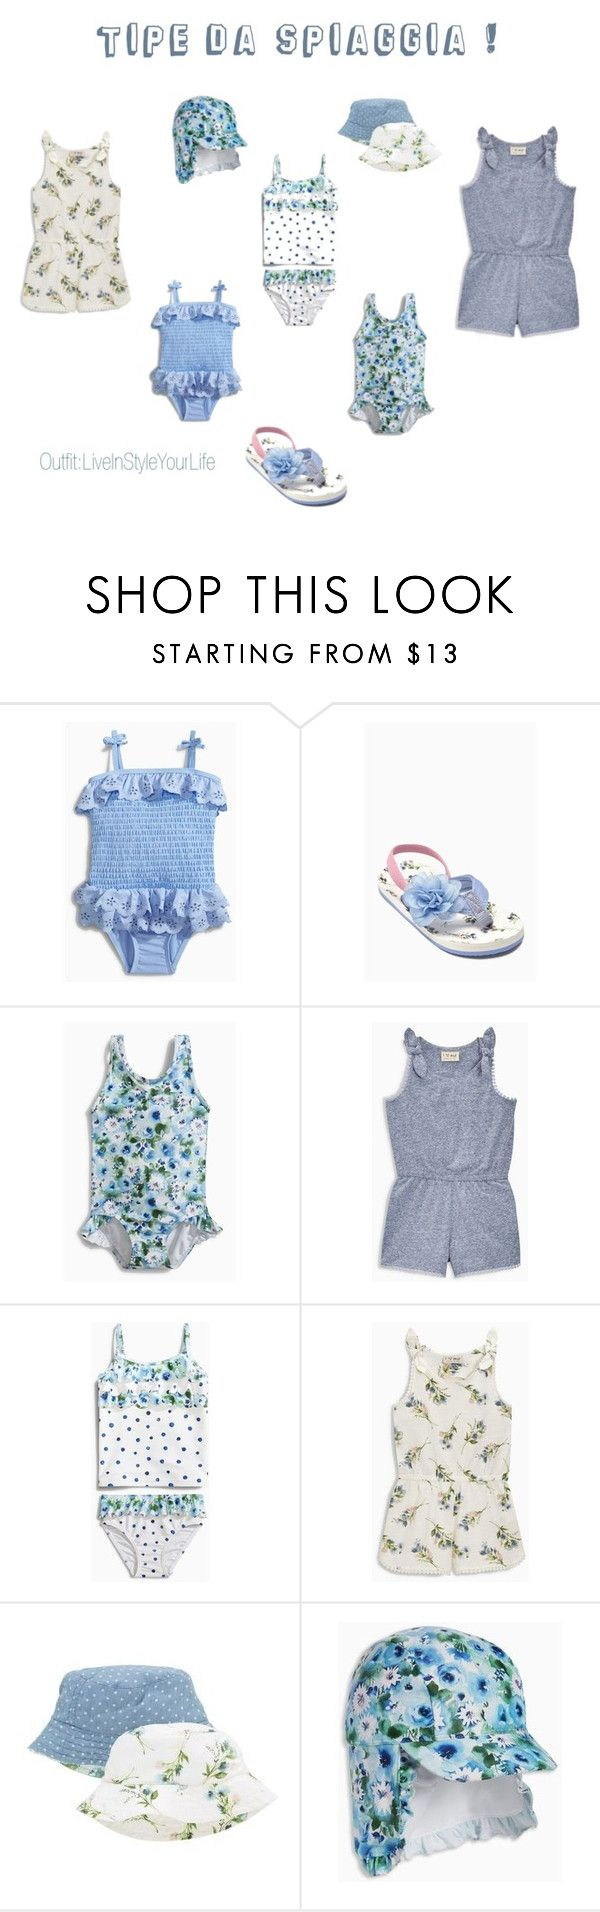 """Tipe da Spiaggia!"" by liveinstyleyourlife ❤ liked on Polyvore featuring Dettagli and Cappelli"